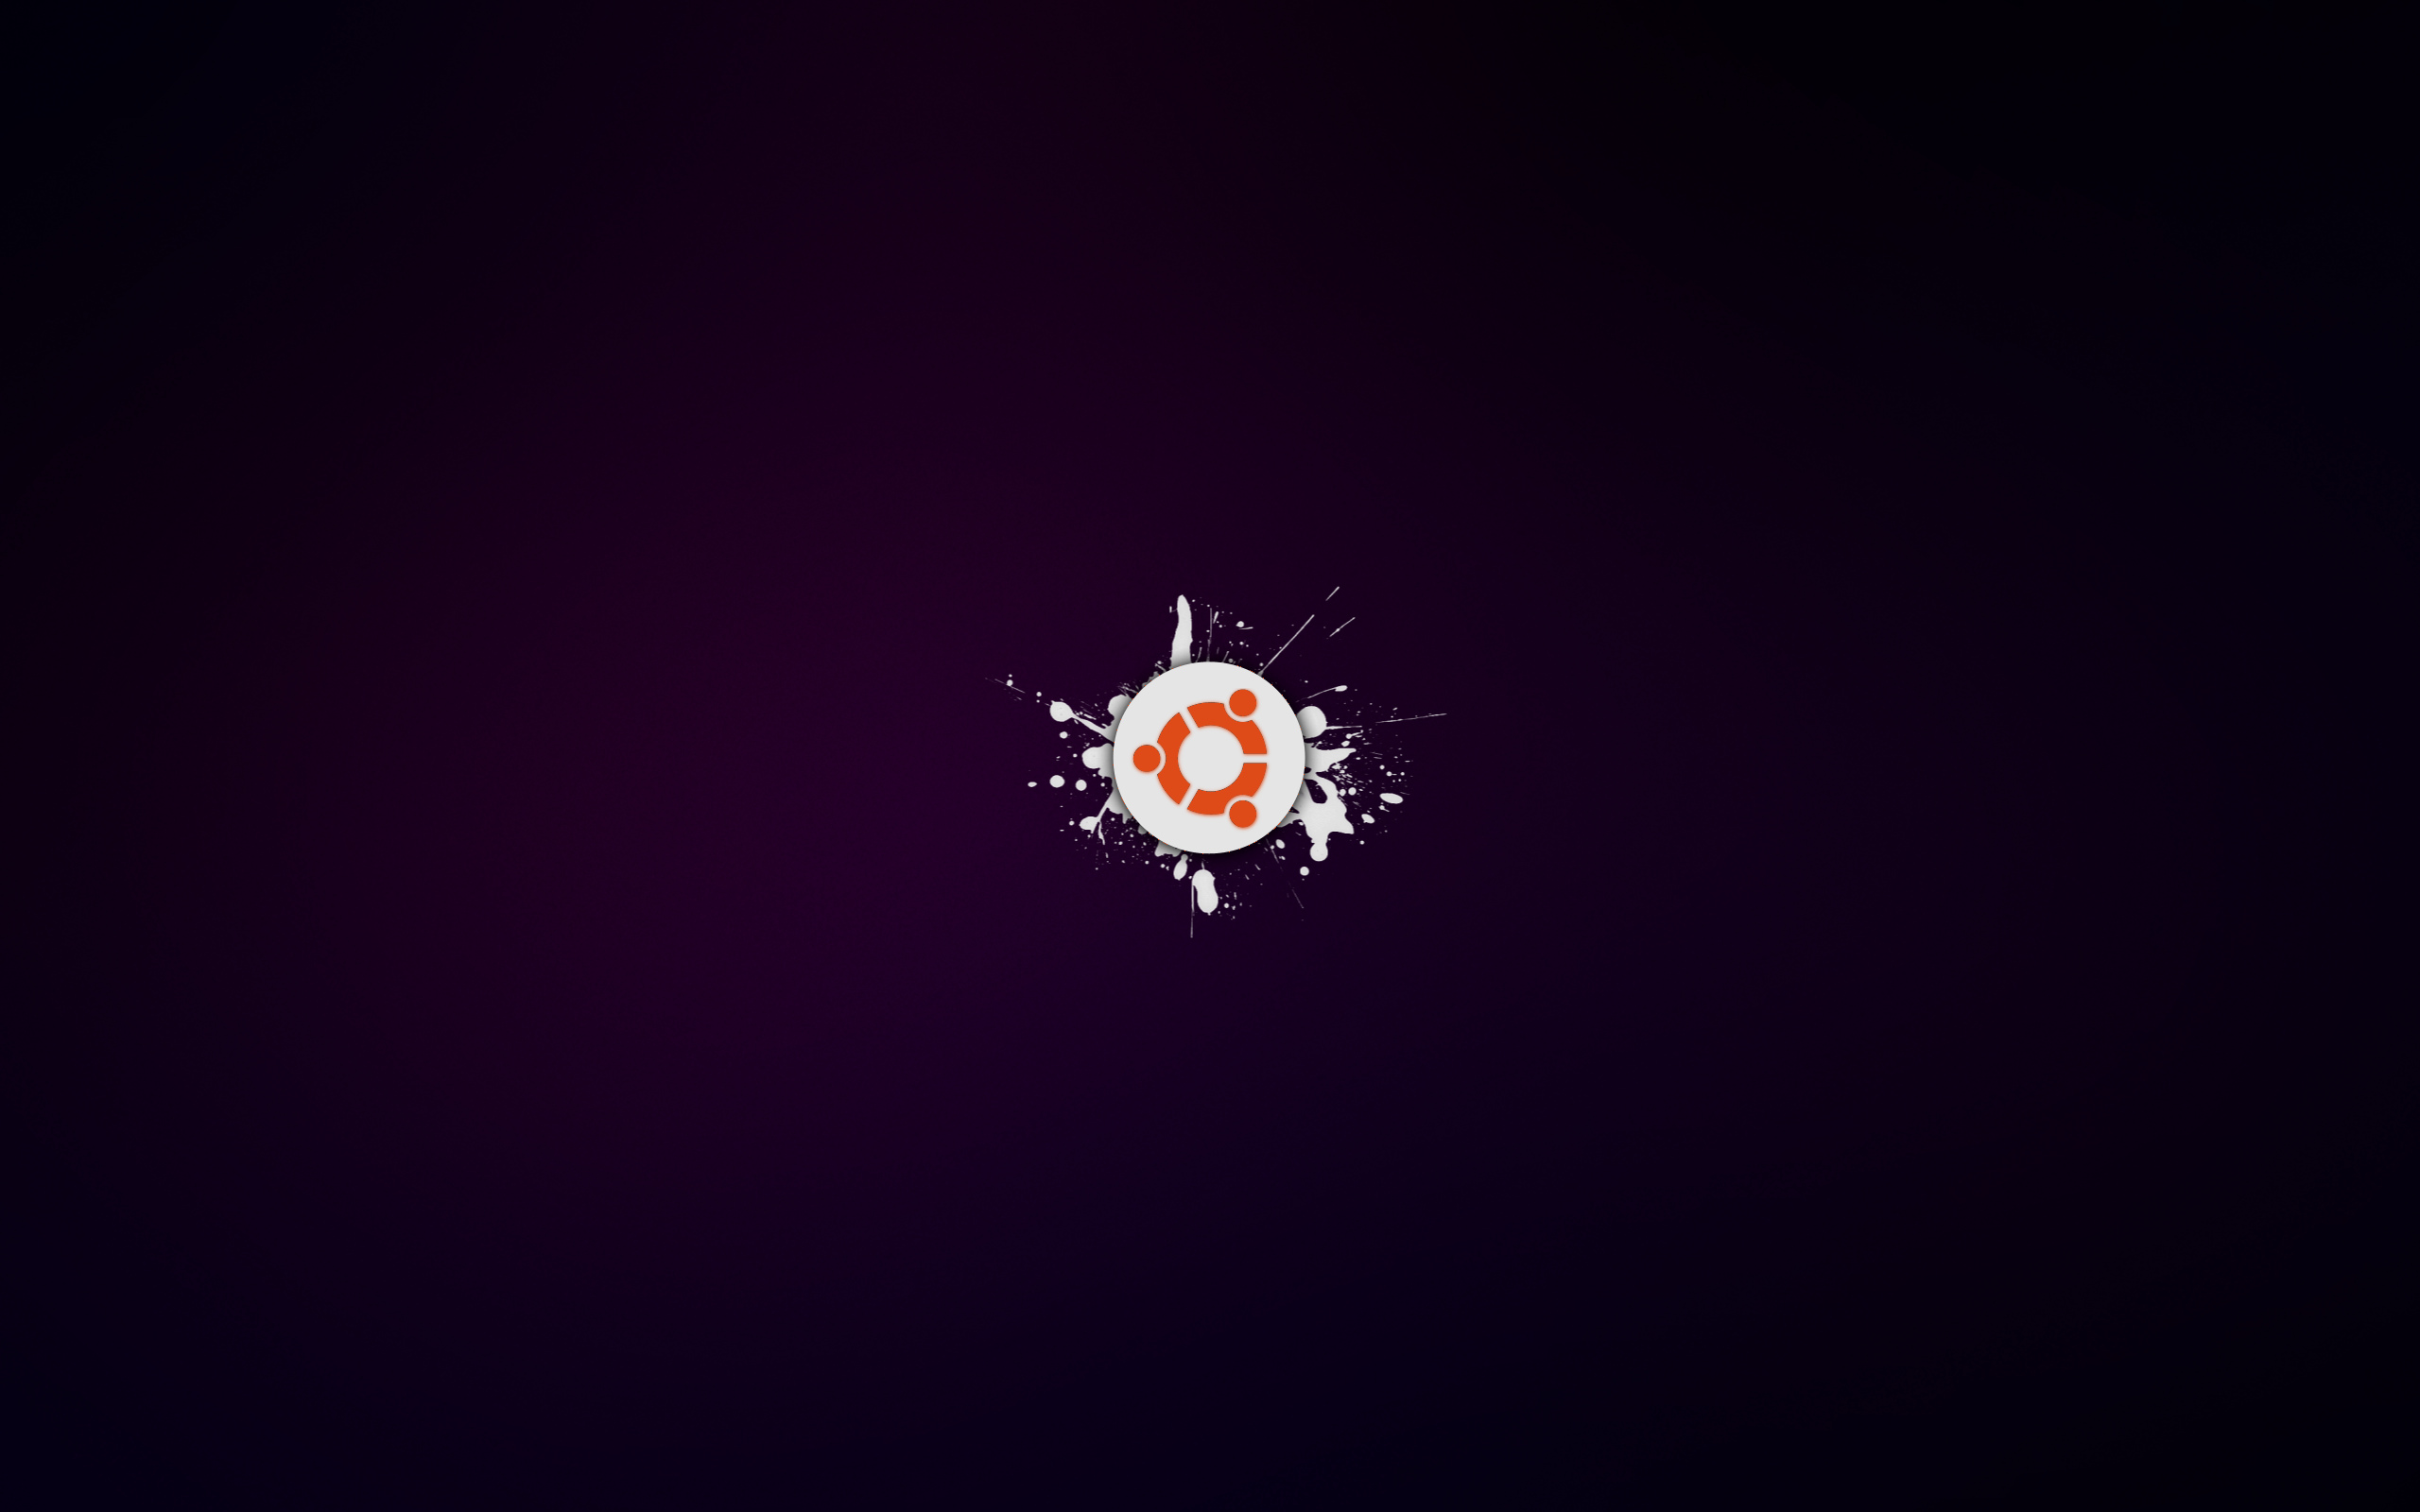 Ubuntu wallpaper  Download  Ubuntu Unity Wallpaper